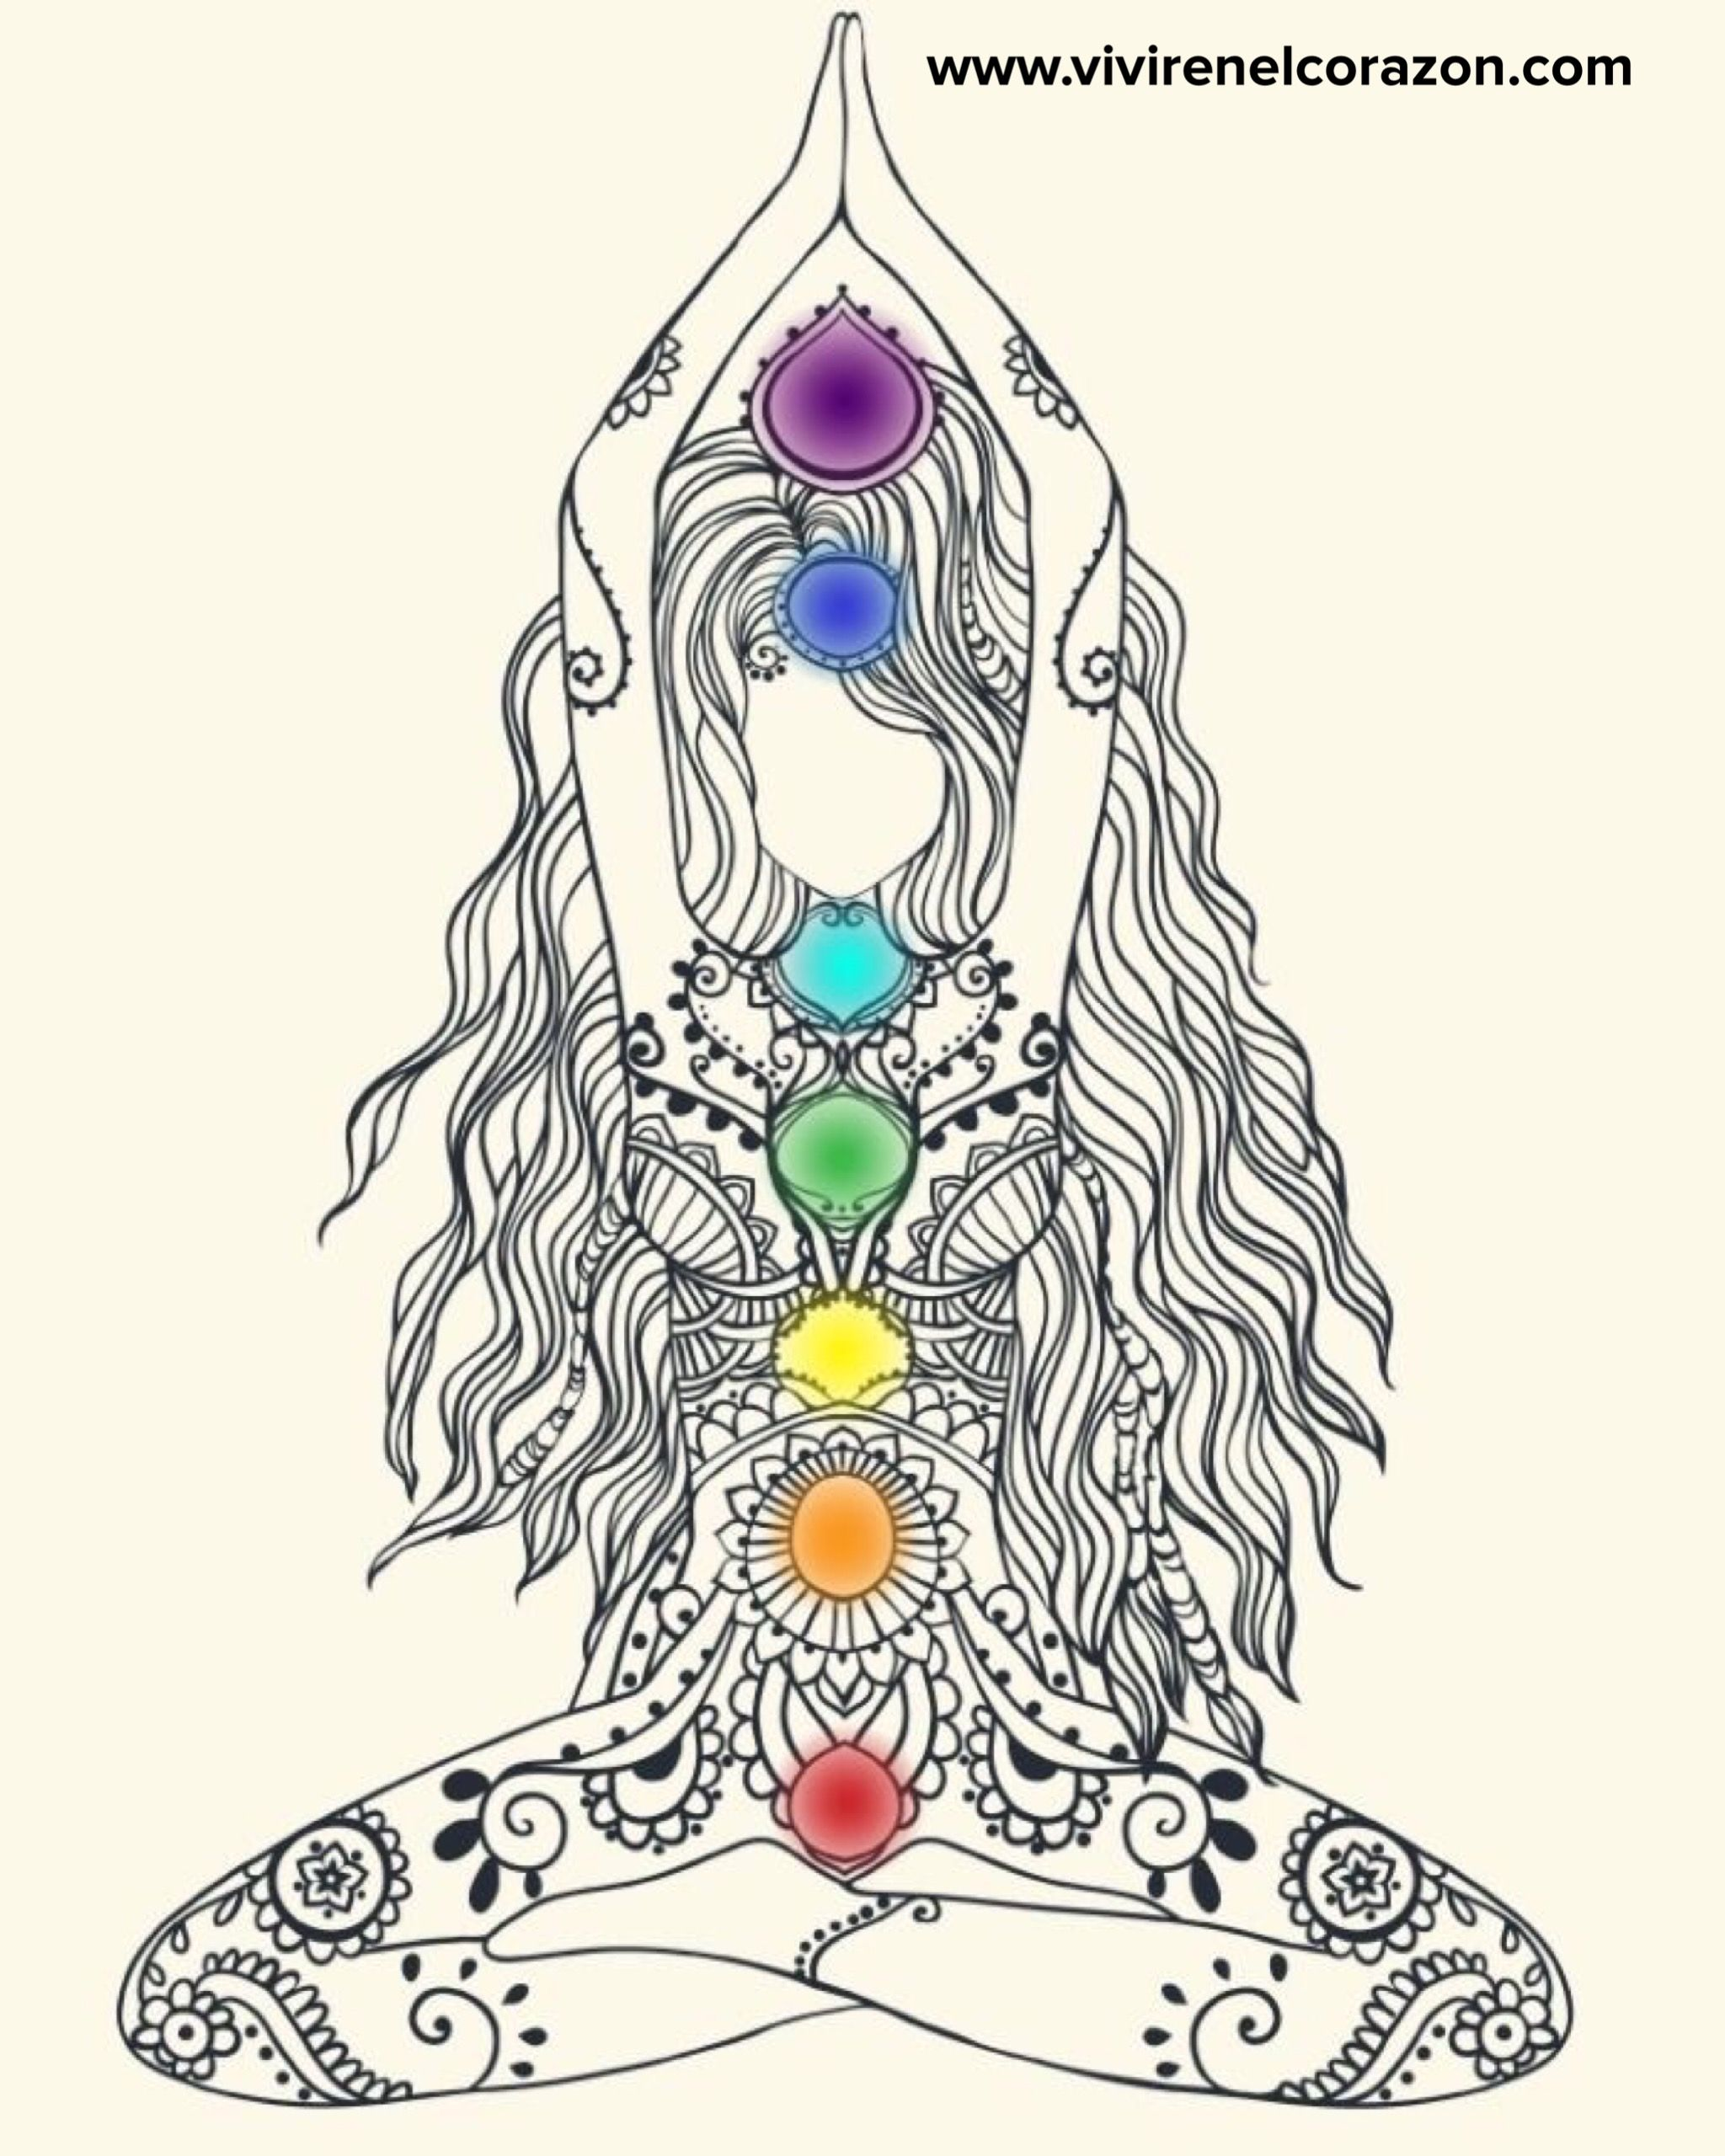 Spirituality: Chakras, Crystals, Stones, Good Vibes, n Higher Frequencies!